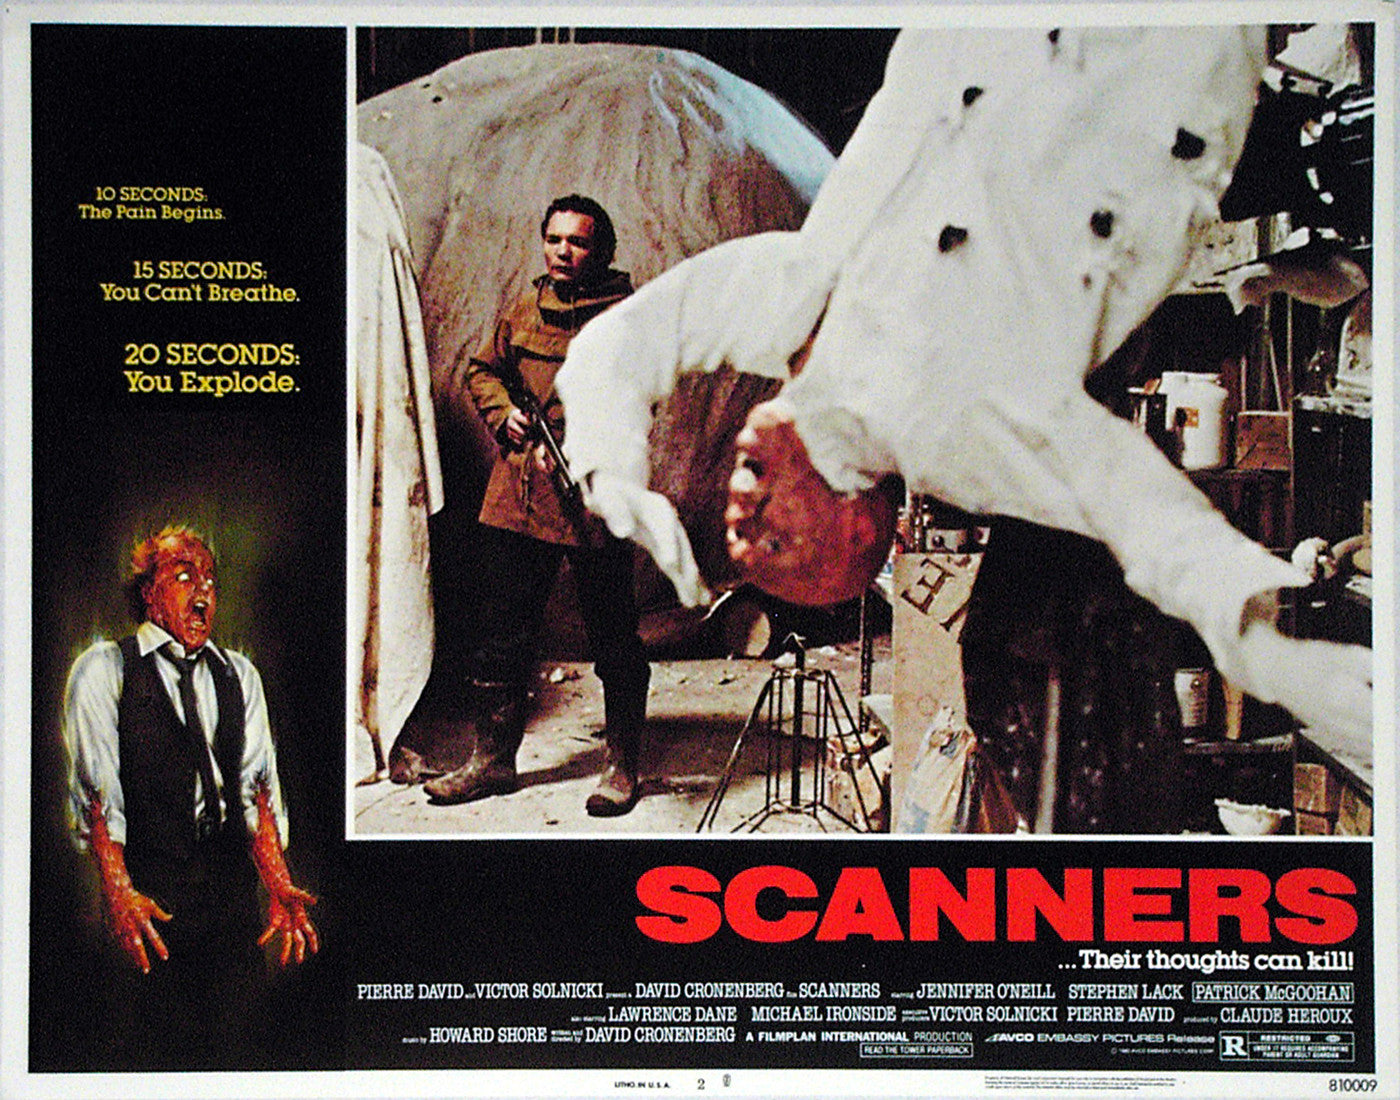 SCANNERS - US lobby card v2